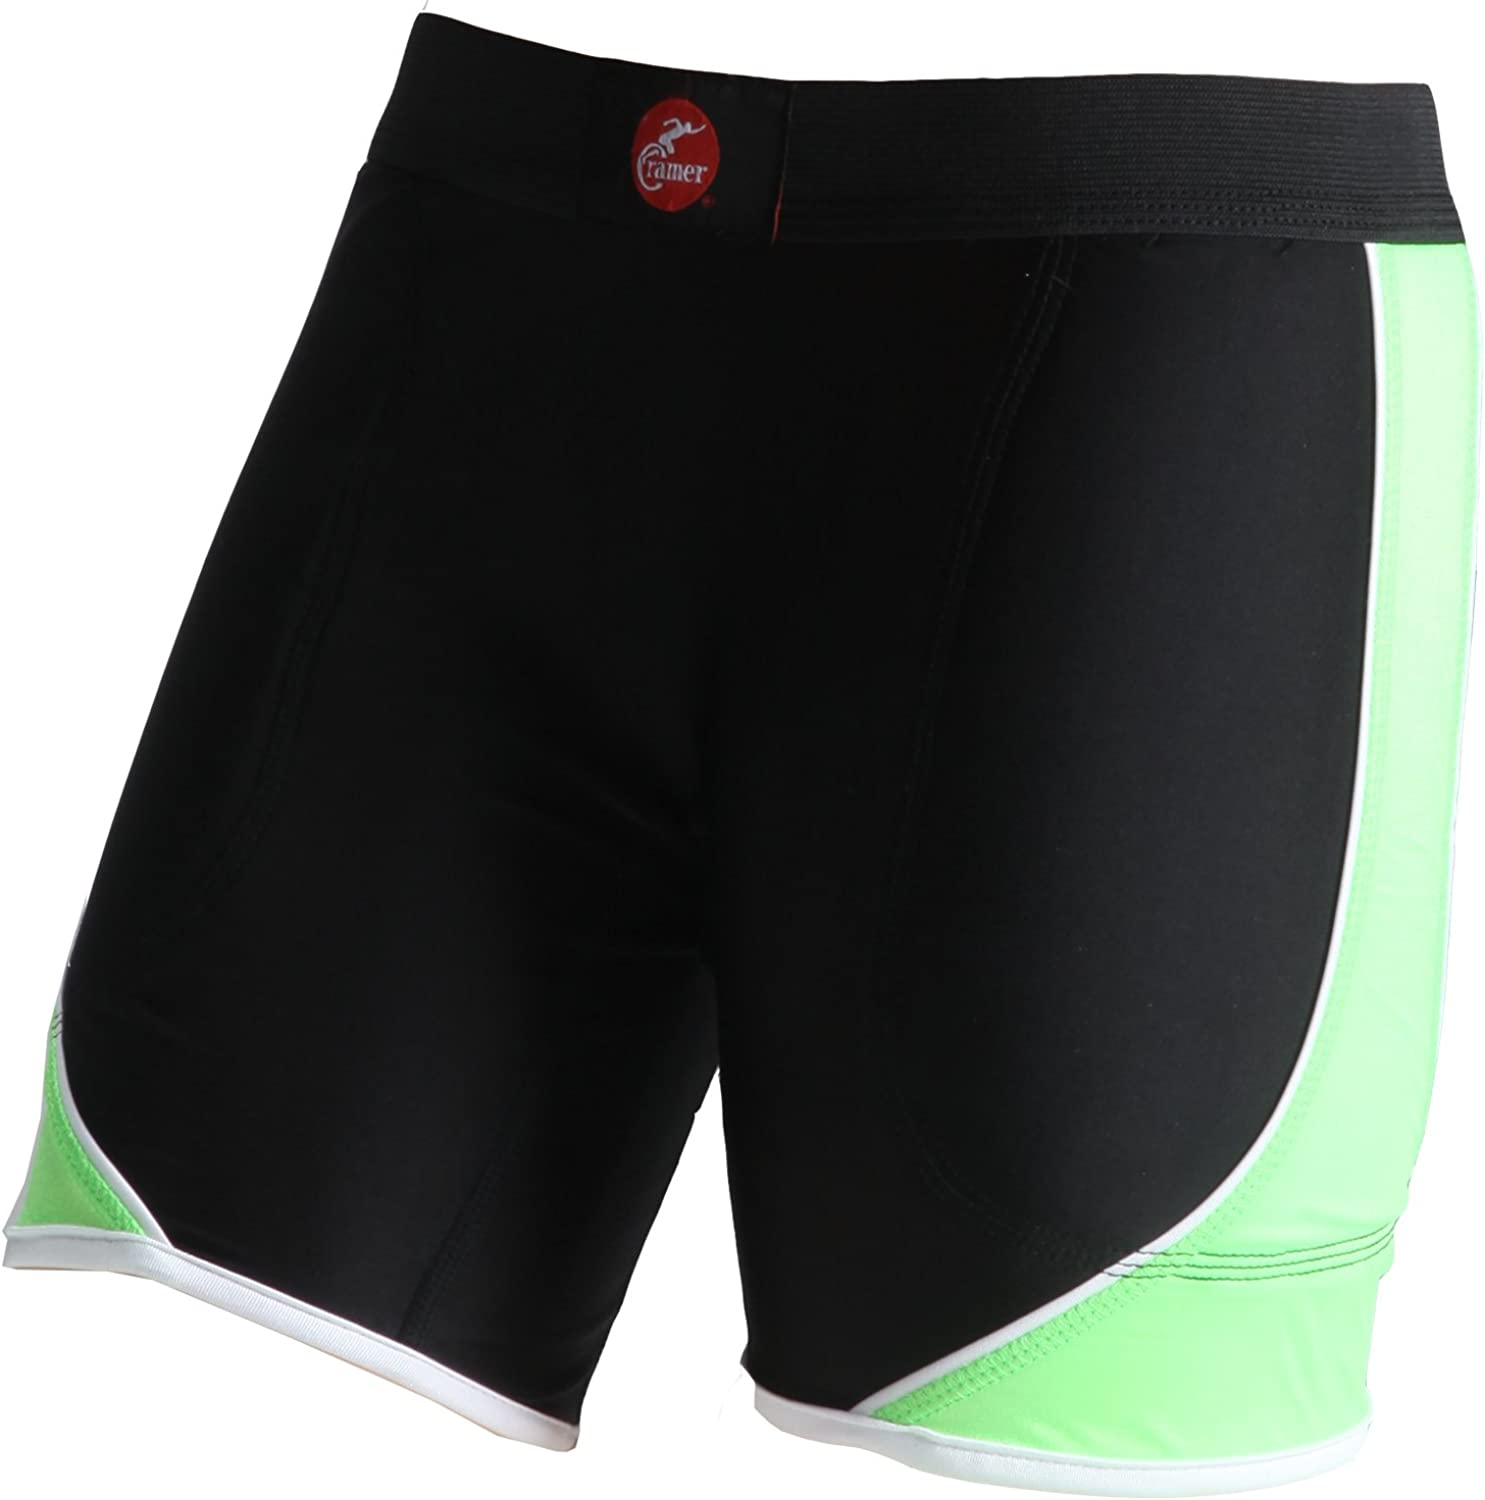 Cramer Women's Crossover Softball Compression Sliding Shorts with Foam Padding, Low-Rise 5 Inch Inseam, Support Prevents Chaffing and Injury During Activity, Black/Lime, X-Small